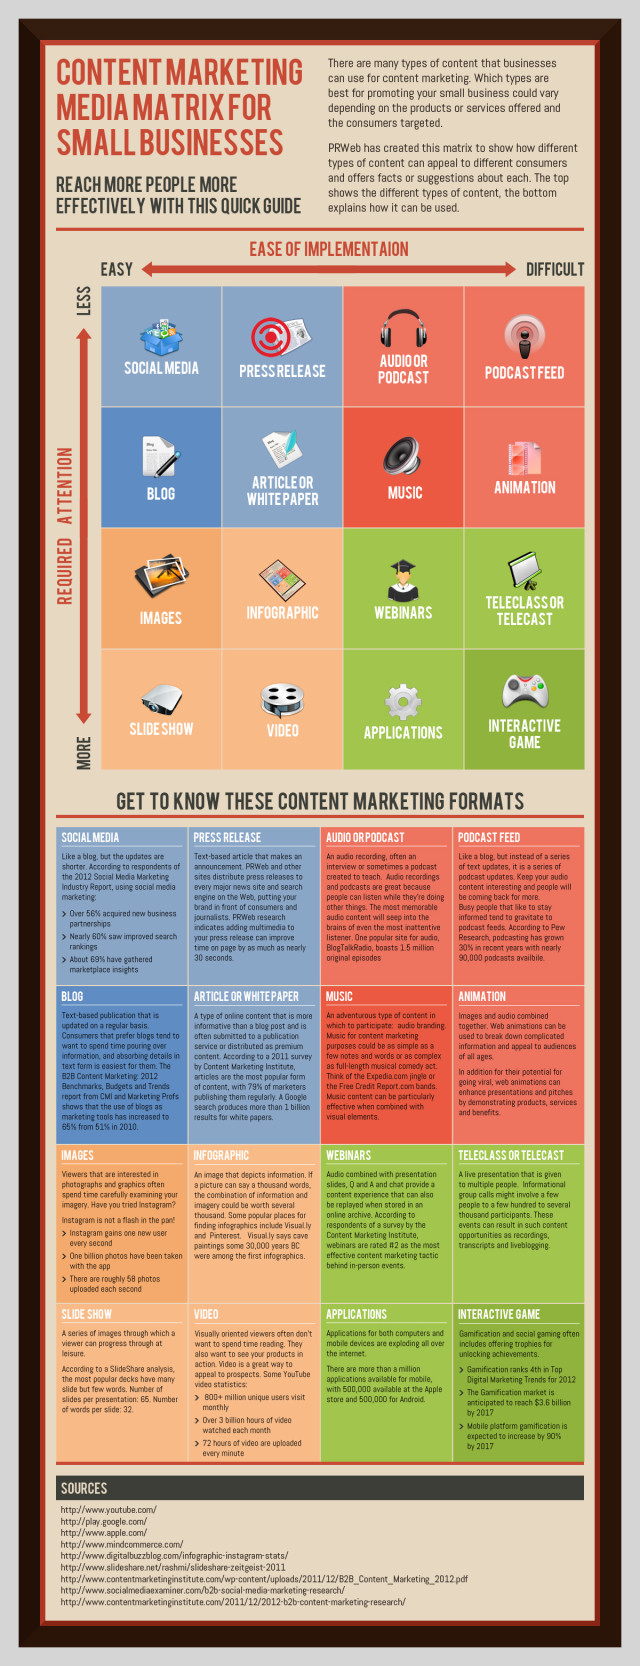 content-and-branding-large-640x1666